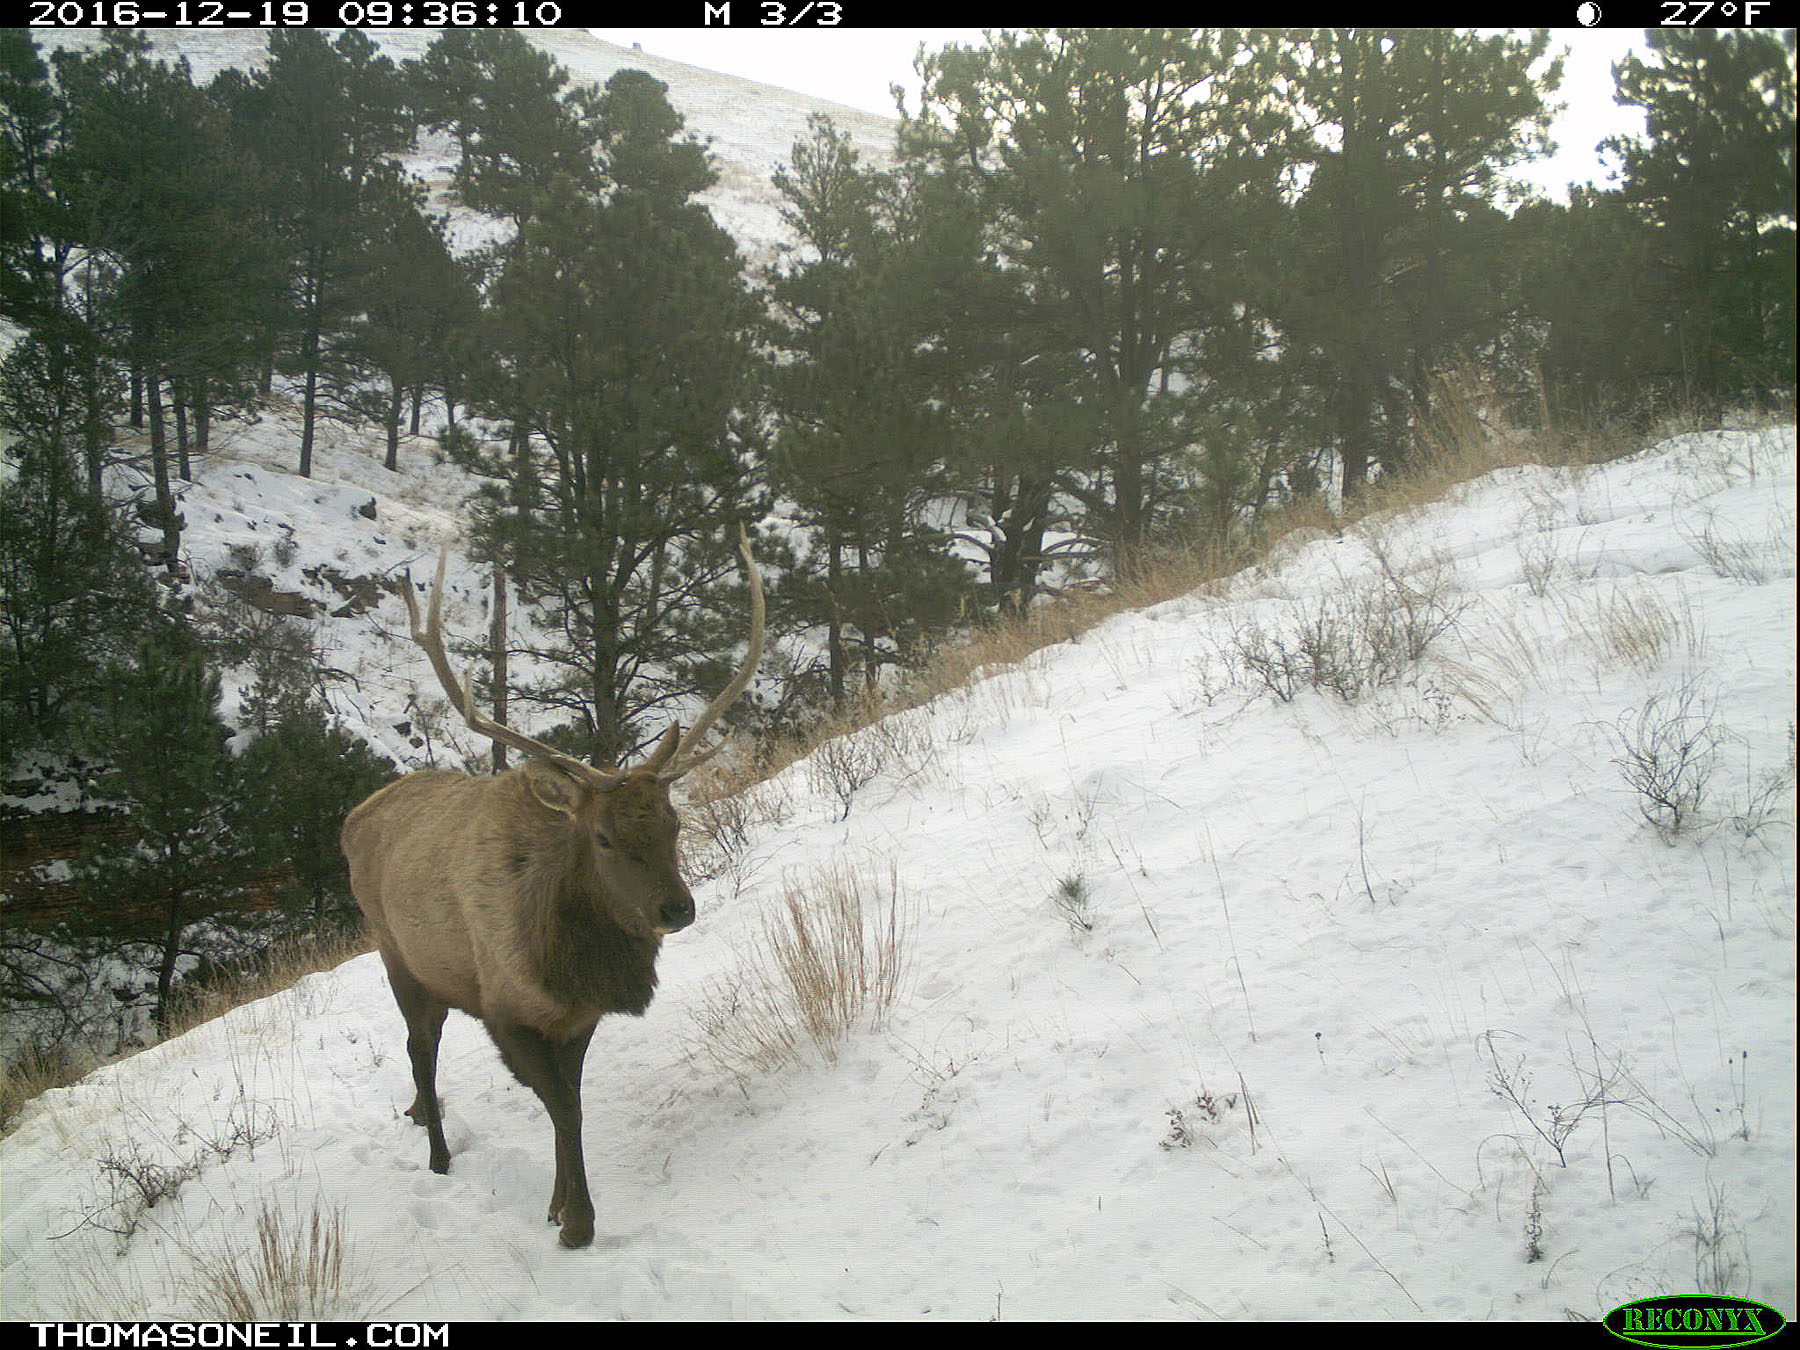 An elk on trailcam in Wind Cave National Park, SD, December 2016.  Click for next photo.